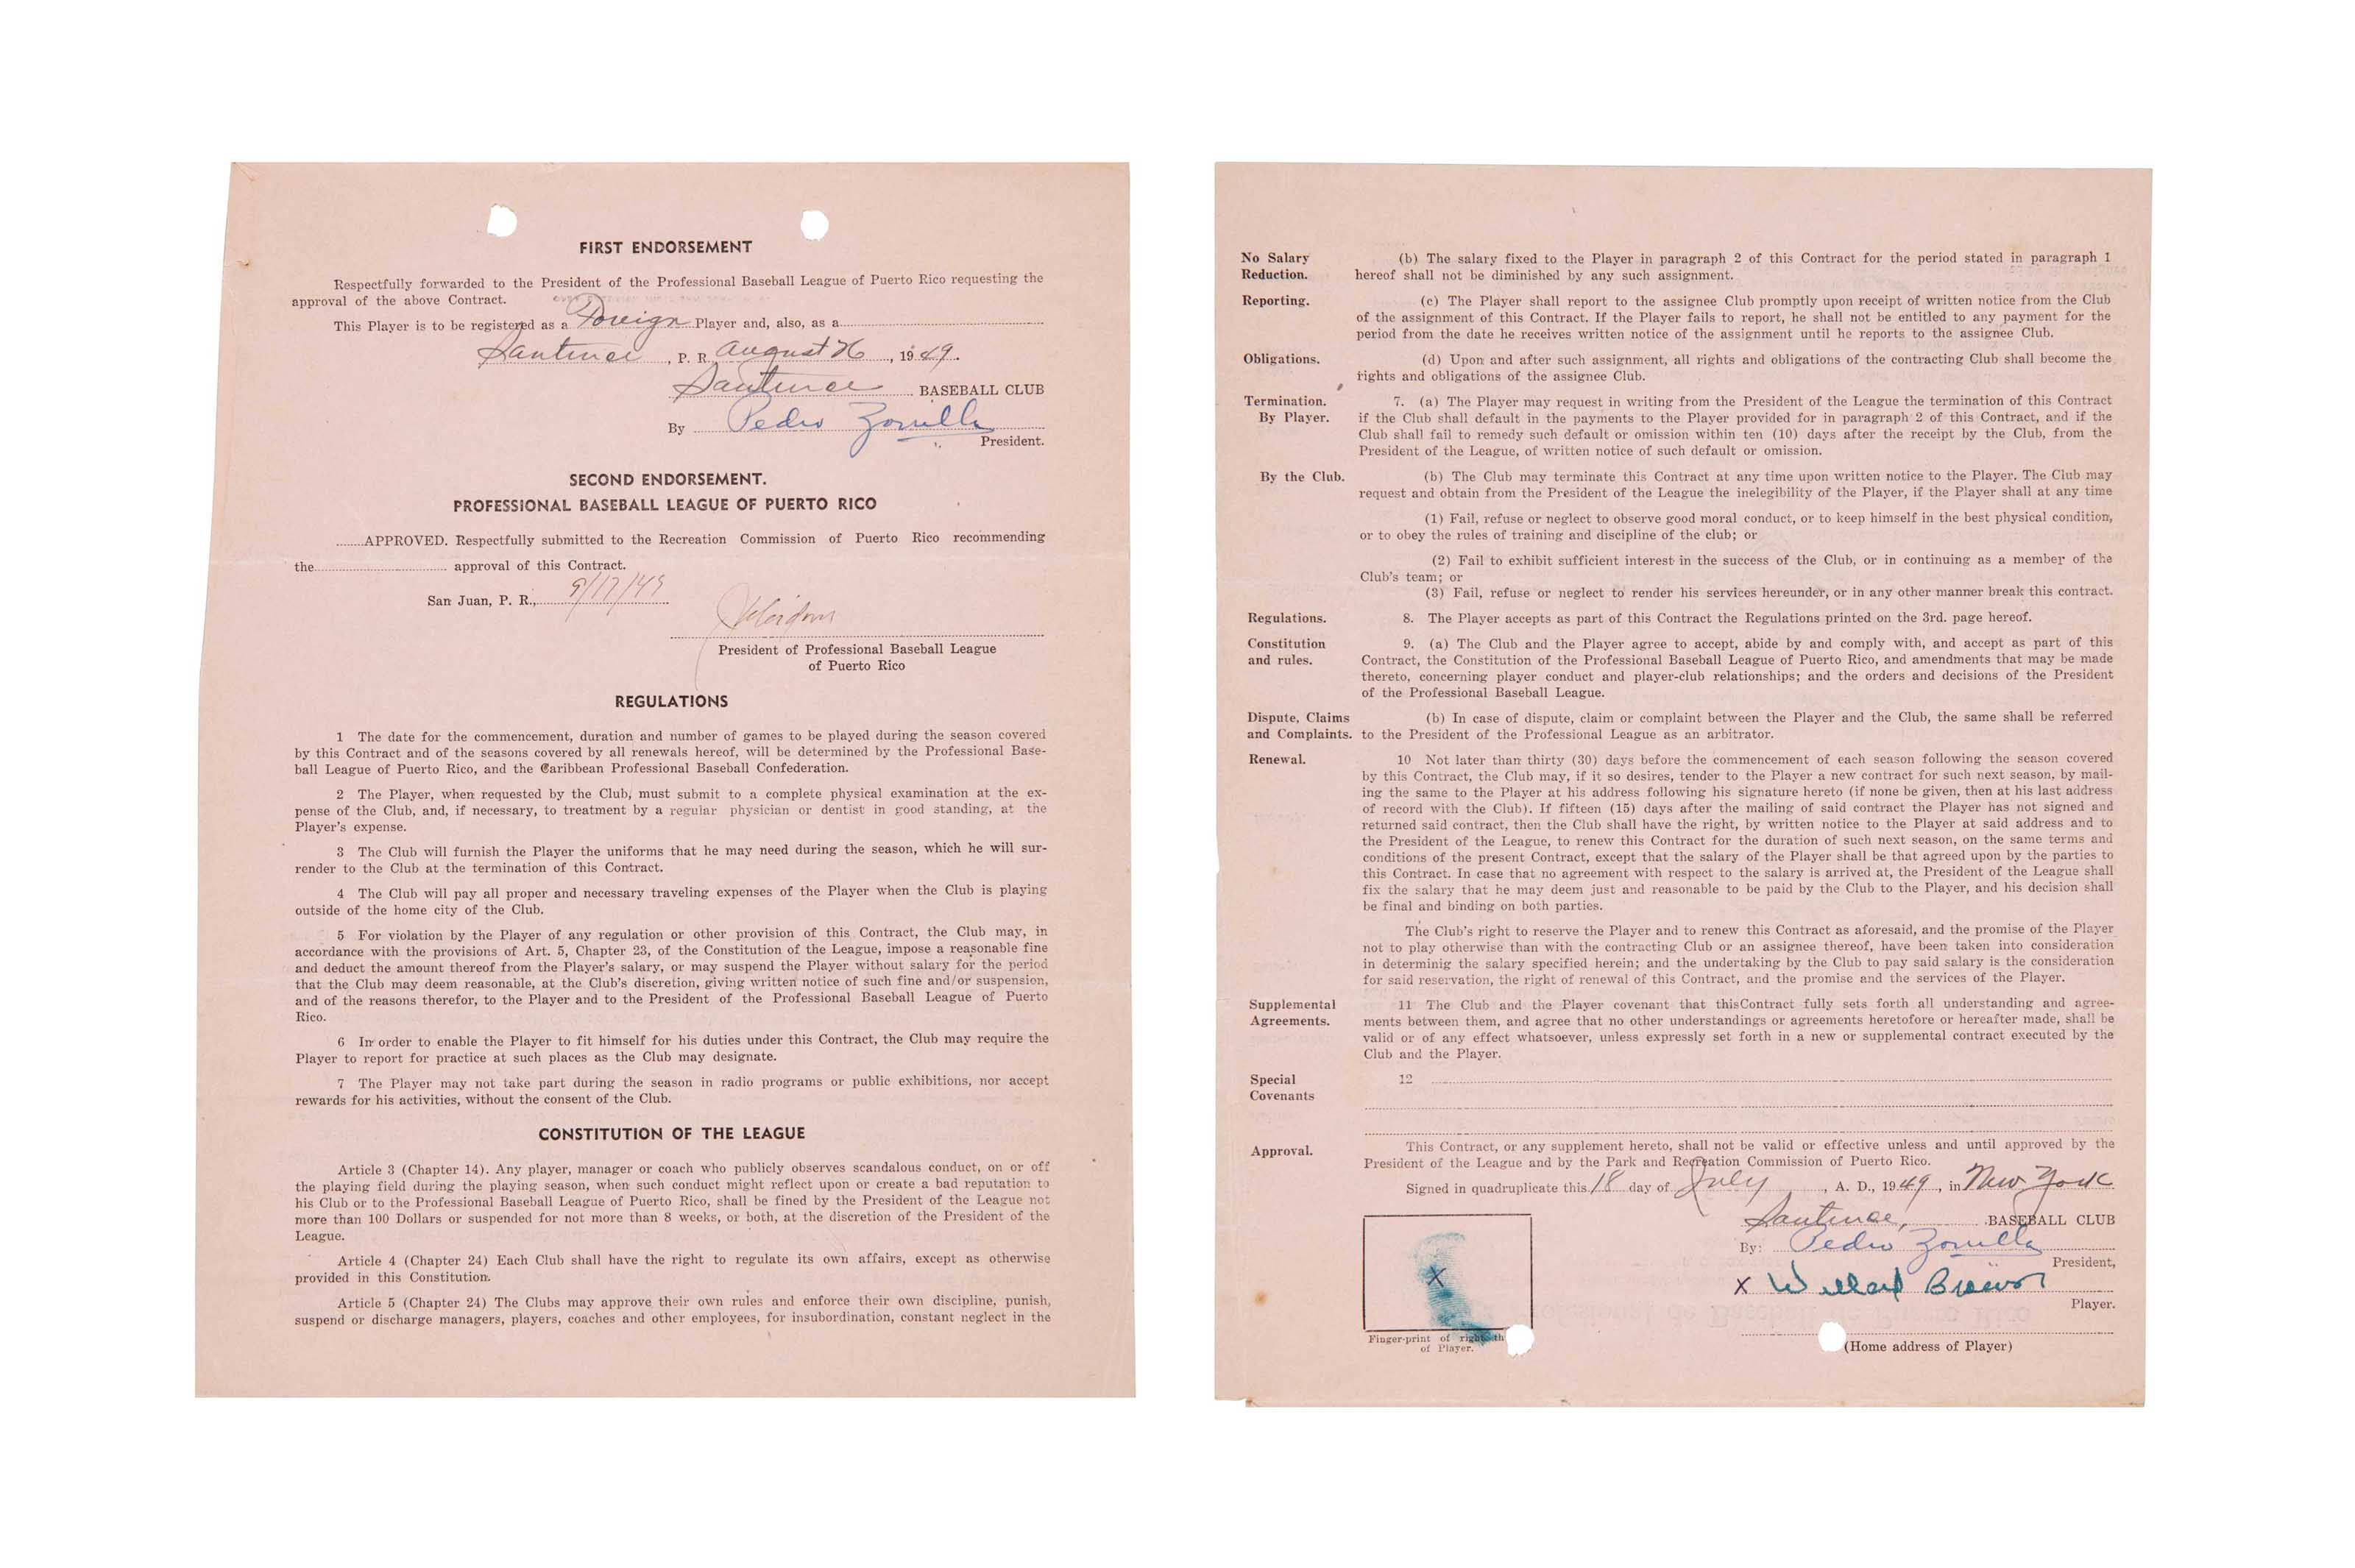 WILLARD BROWN SIGNED CONTRACT